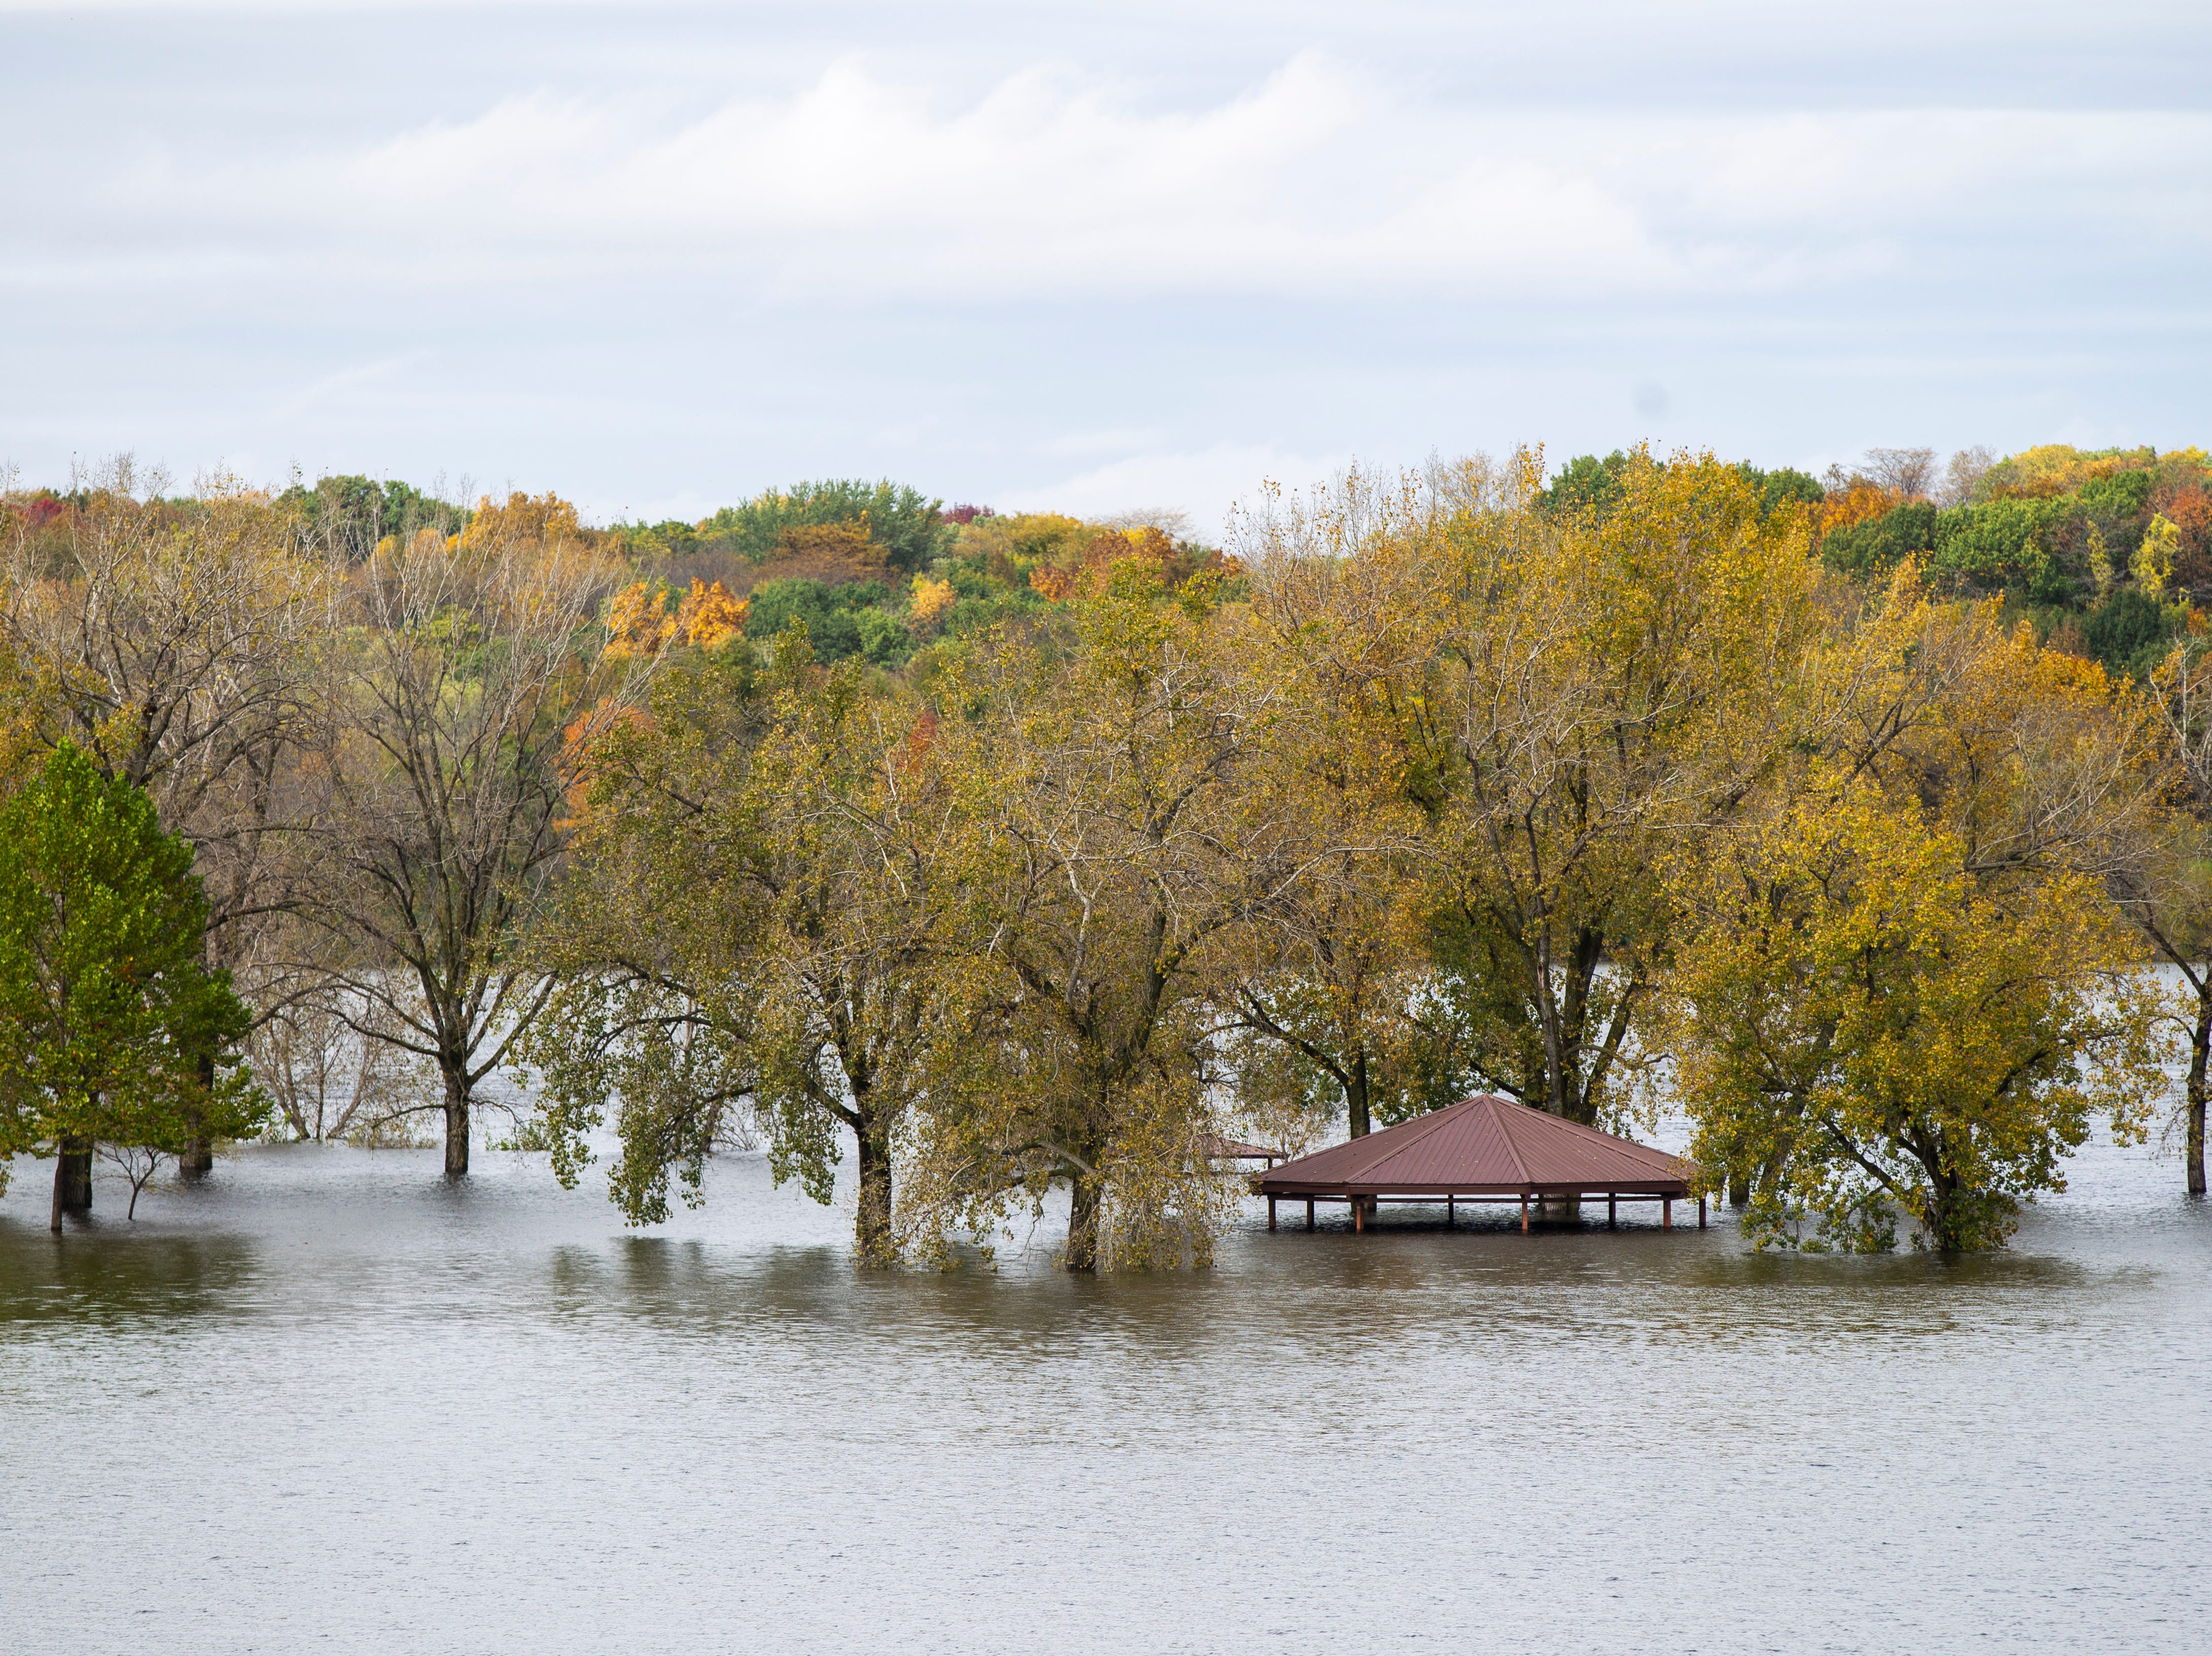 Water raises out past the beach to surround a pavilion on Wednesday, Oct. 10, 2018, at the Coralville Lake dam.